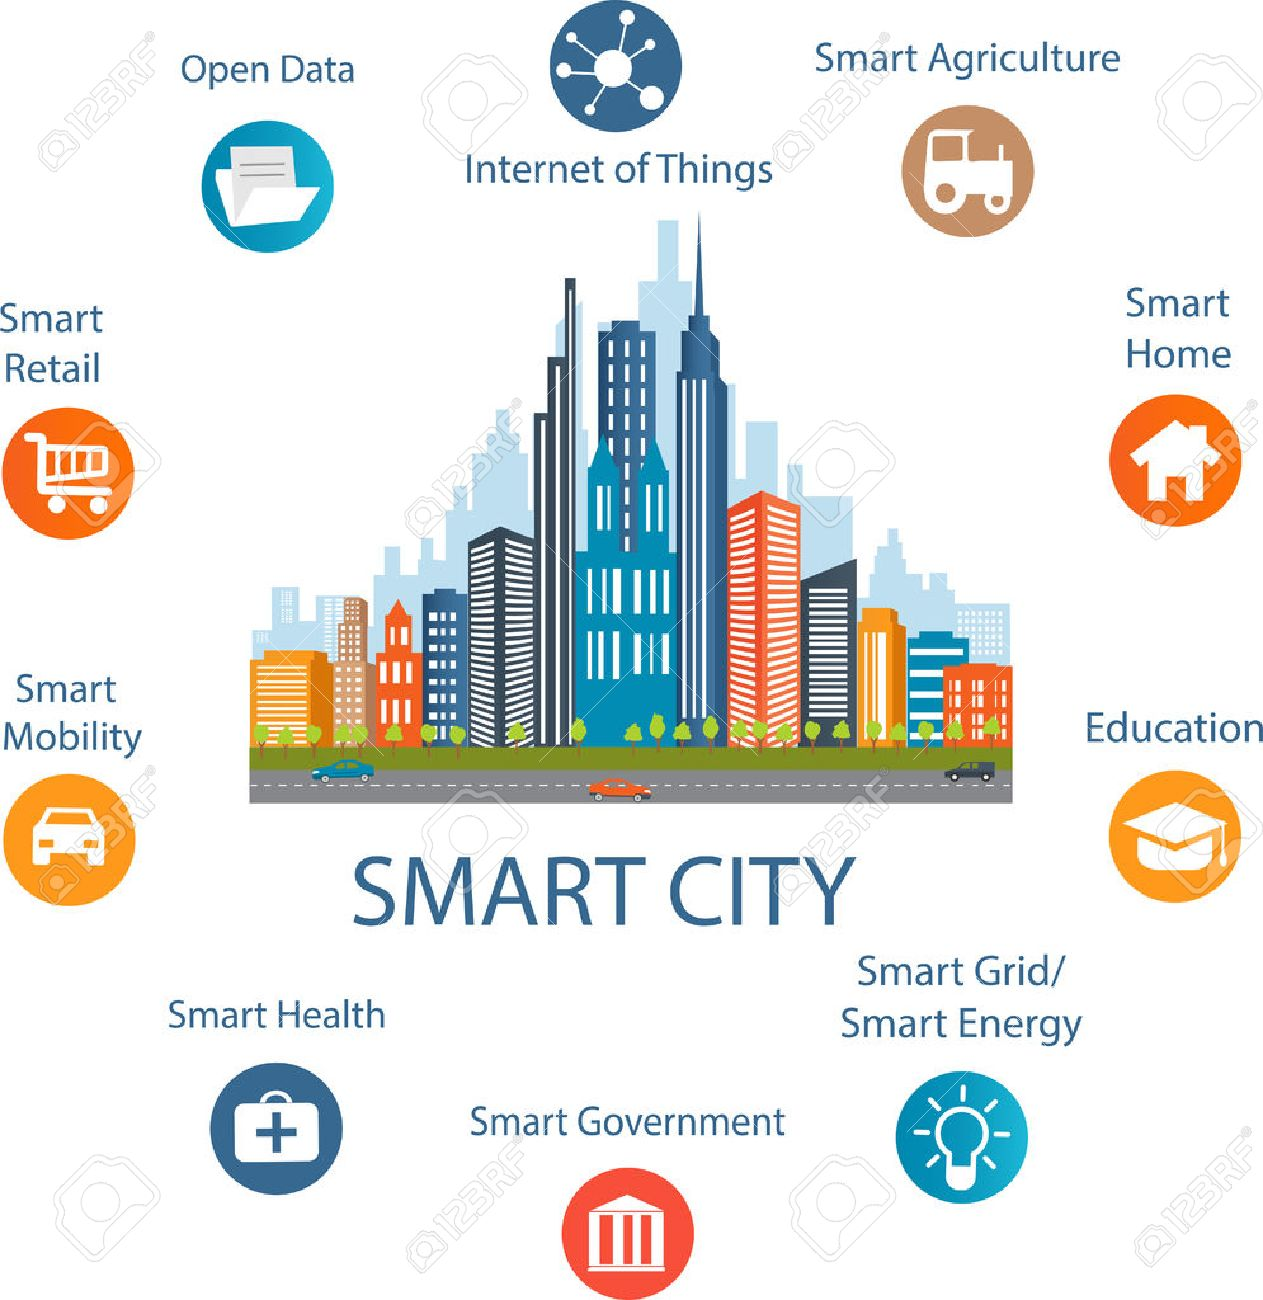 Smart city concept with different icon and elements. Modern city design with future technology for living. Illustration of innovations and Internet of things.Internet of things/Smart city - 52445942